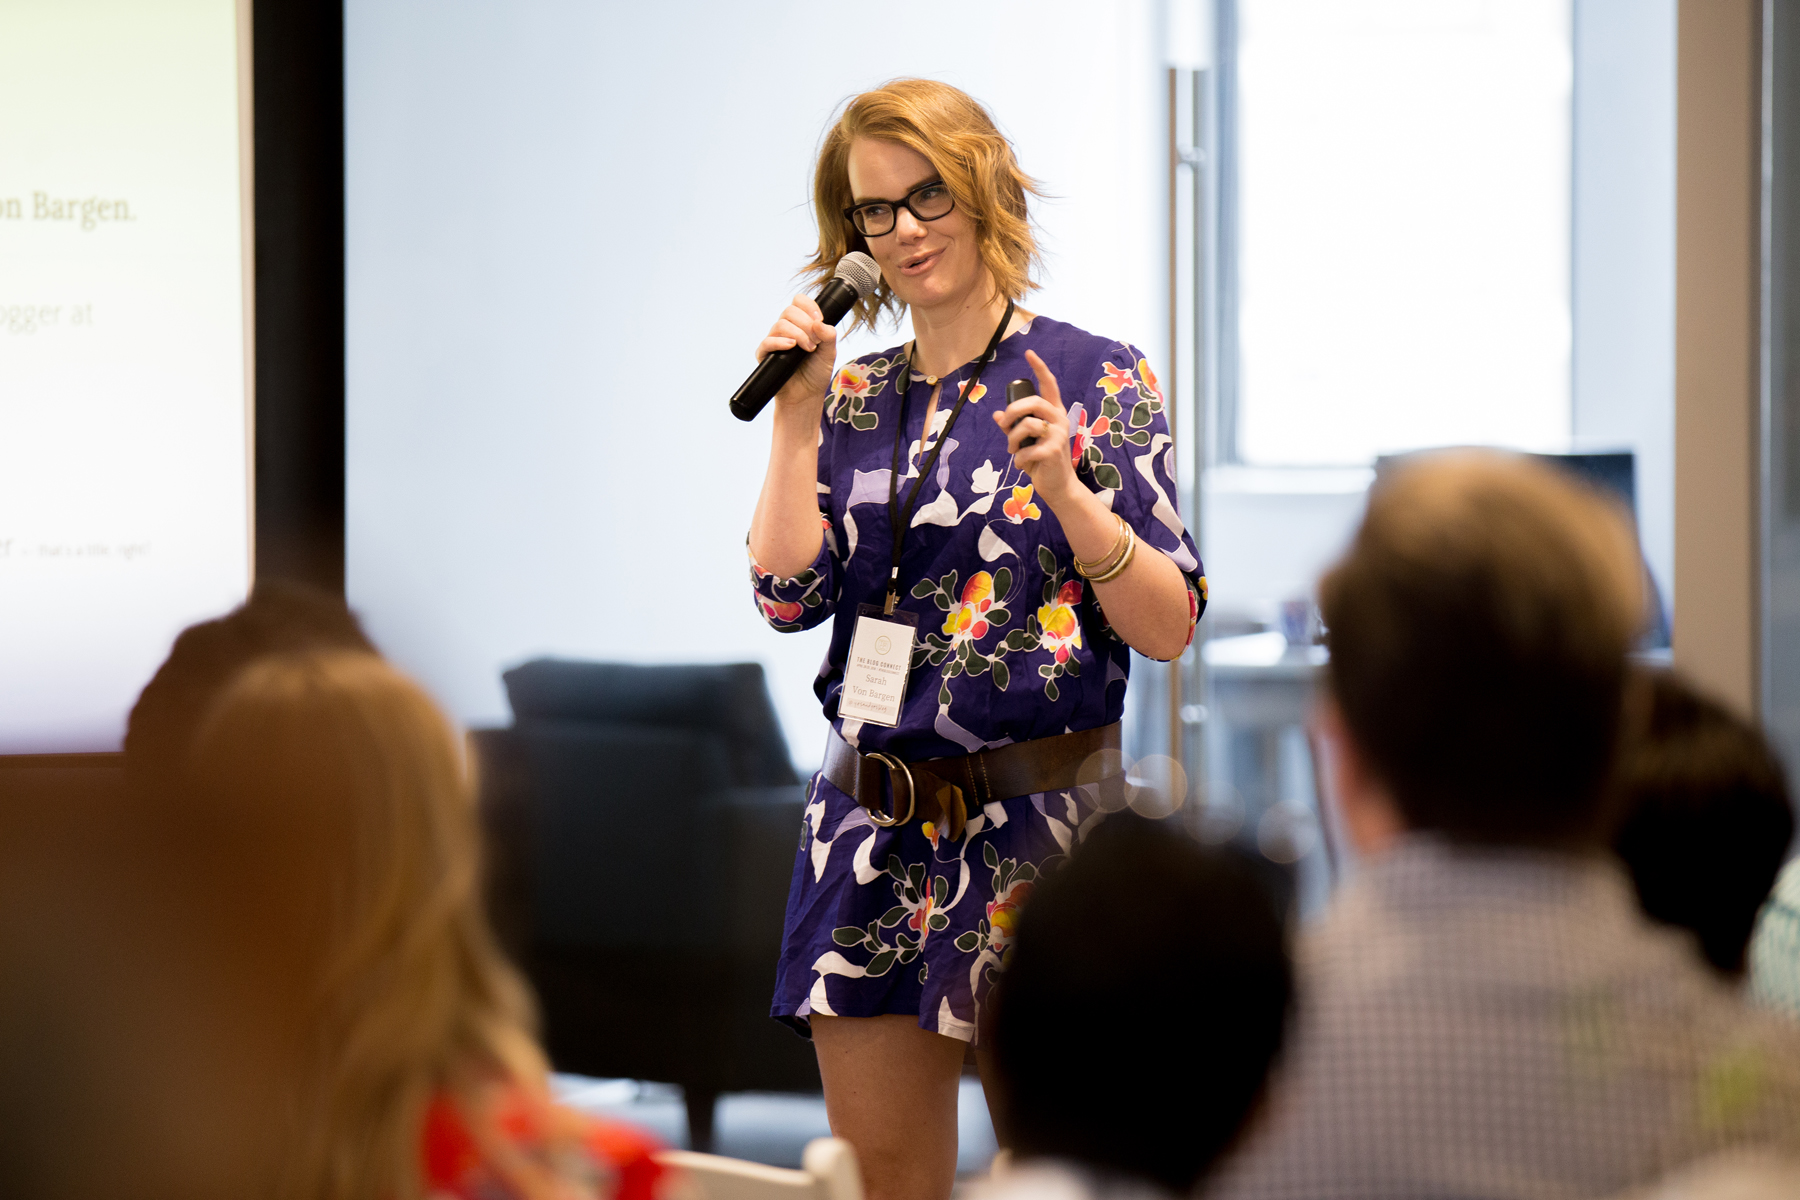 Sarah Von Bargen from Yes and Yes presenting at The Blog Connect 2018. || Photo by  Tim Becker Photography